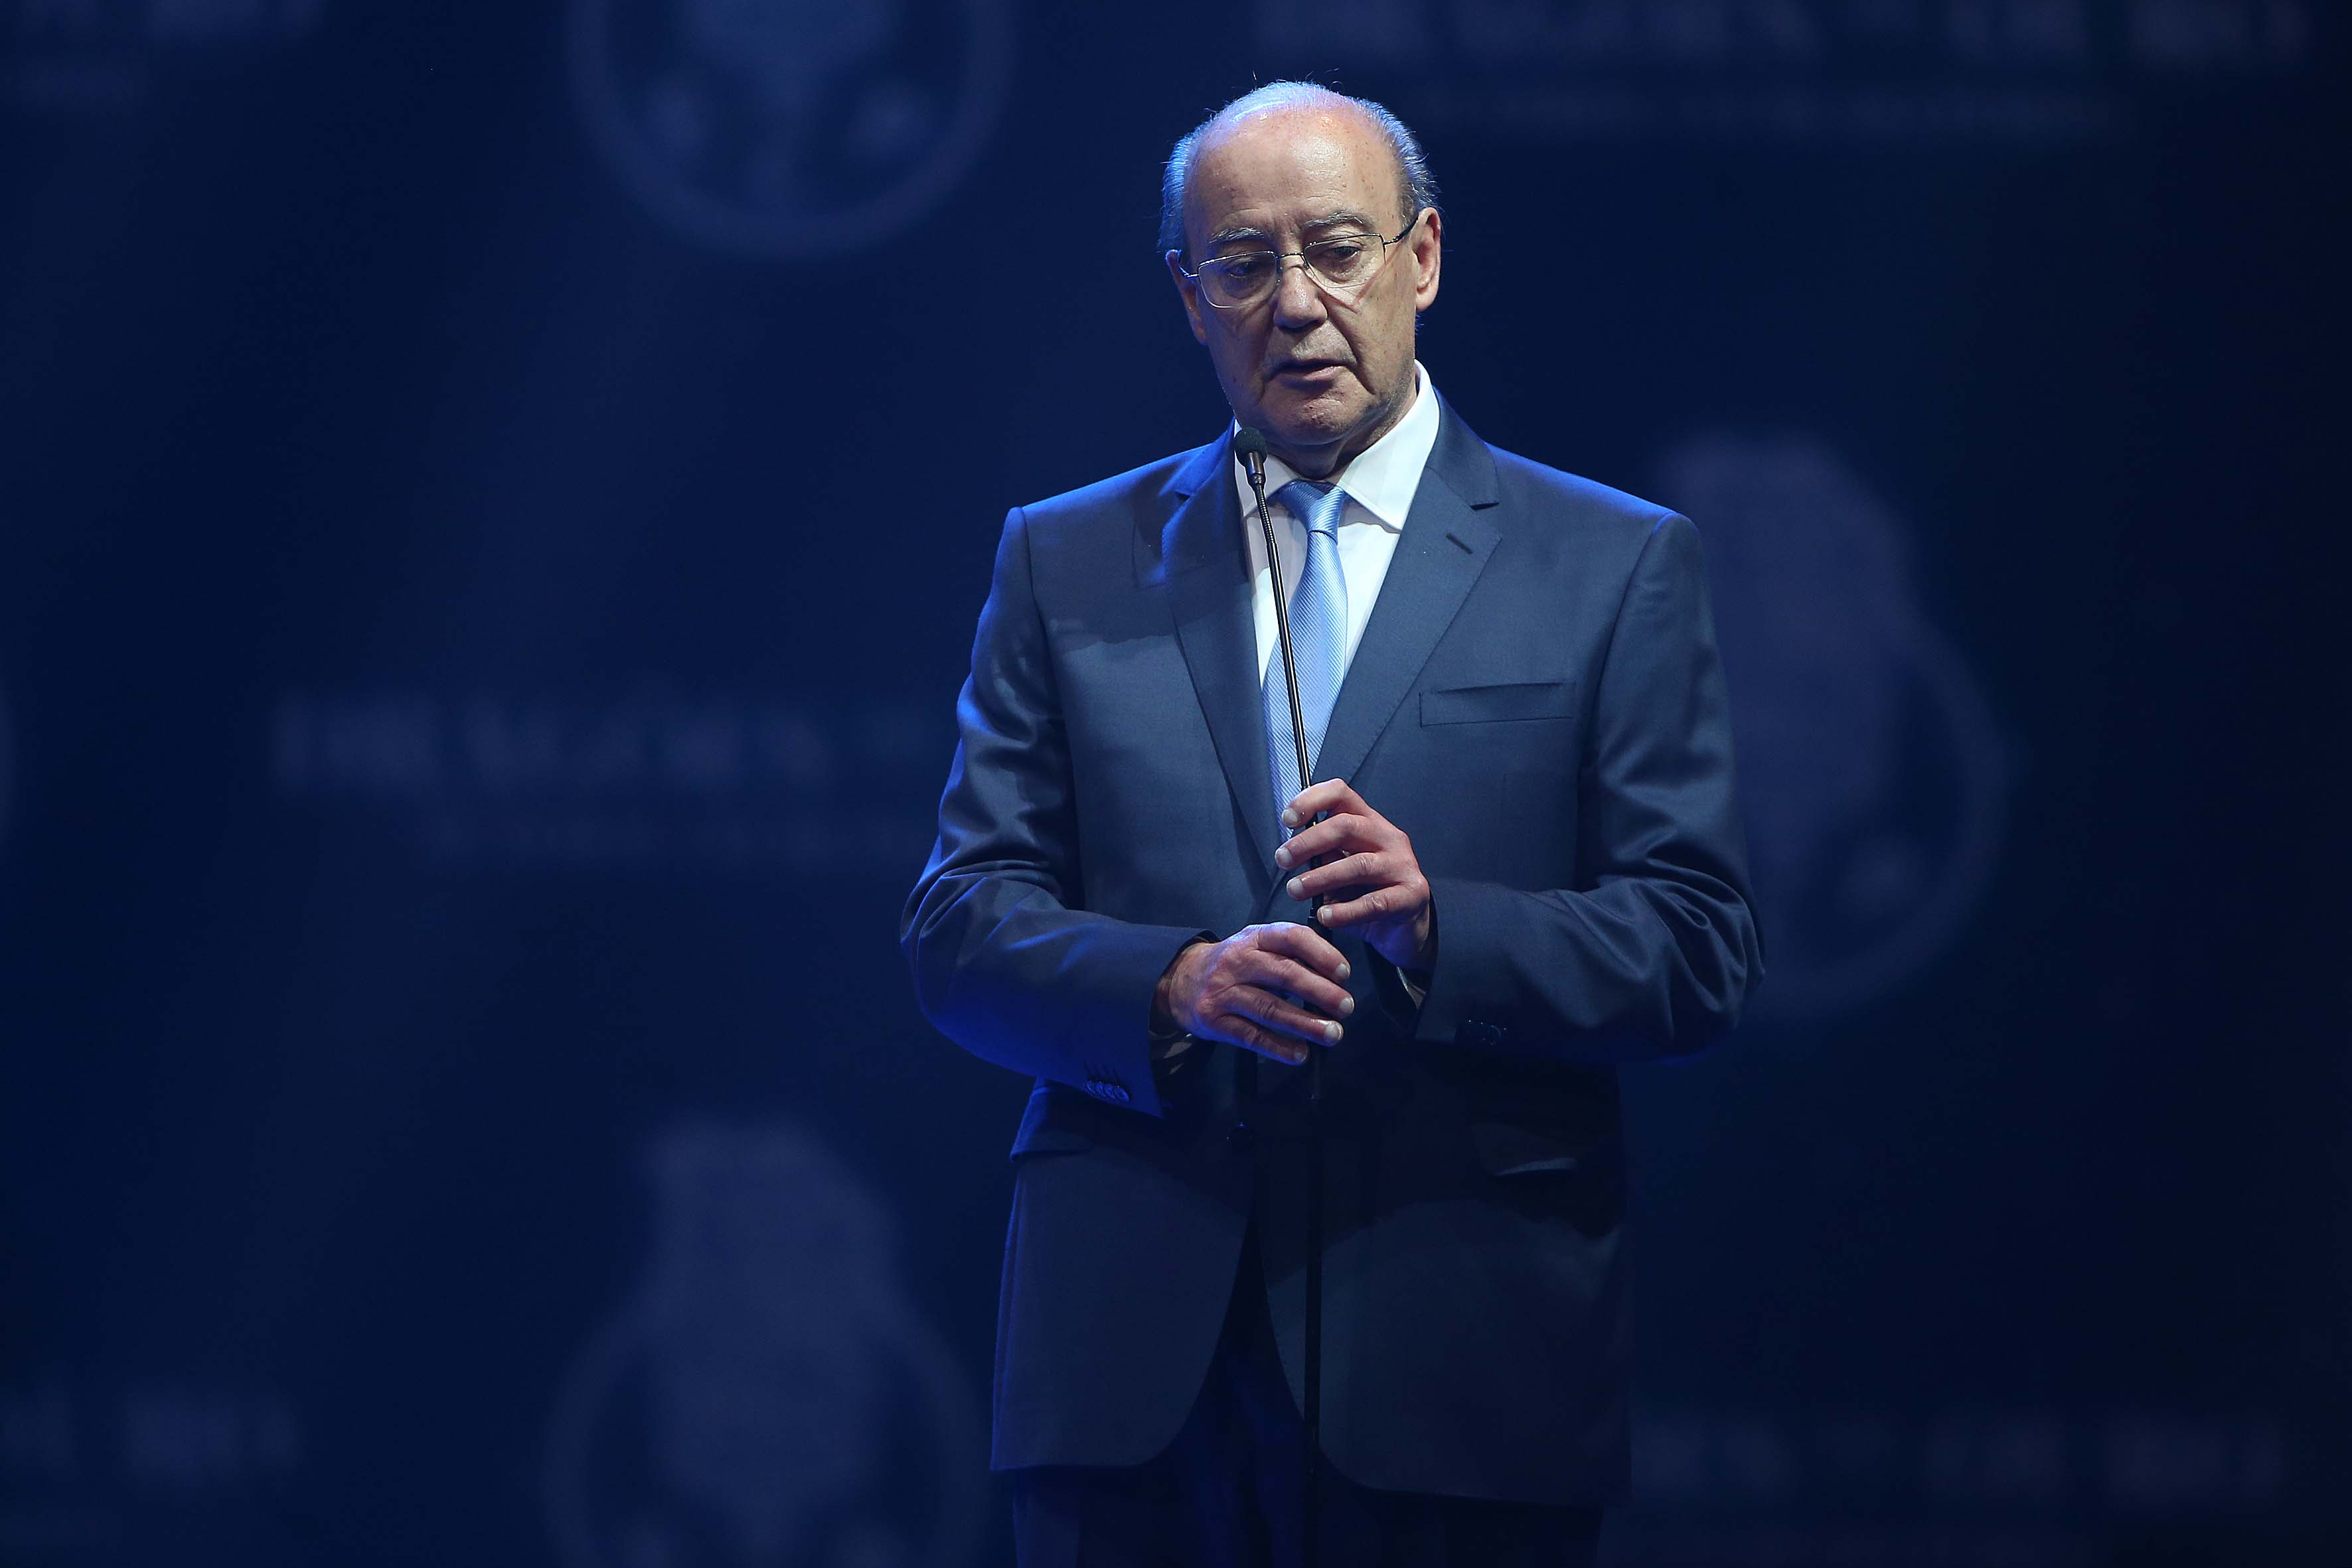 Pinto da Costa regressa